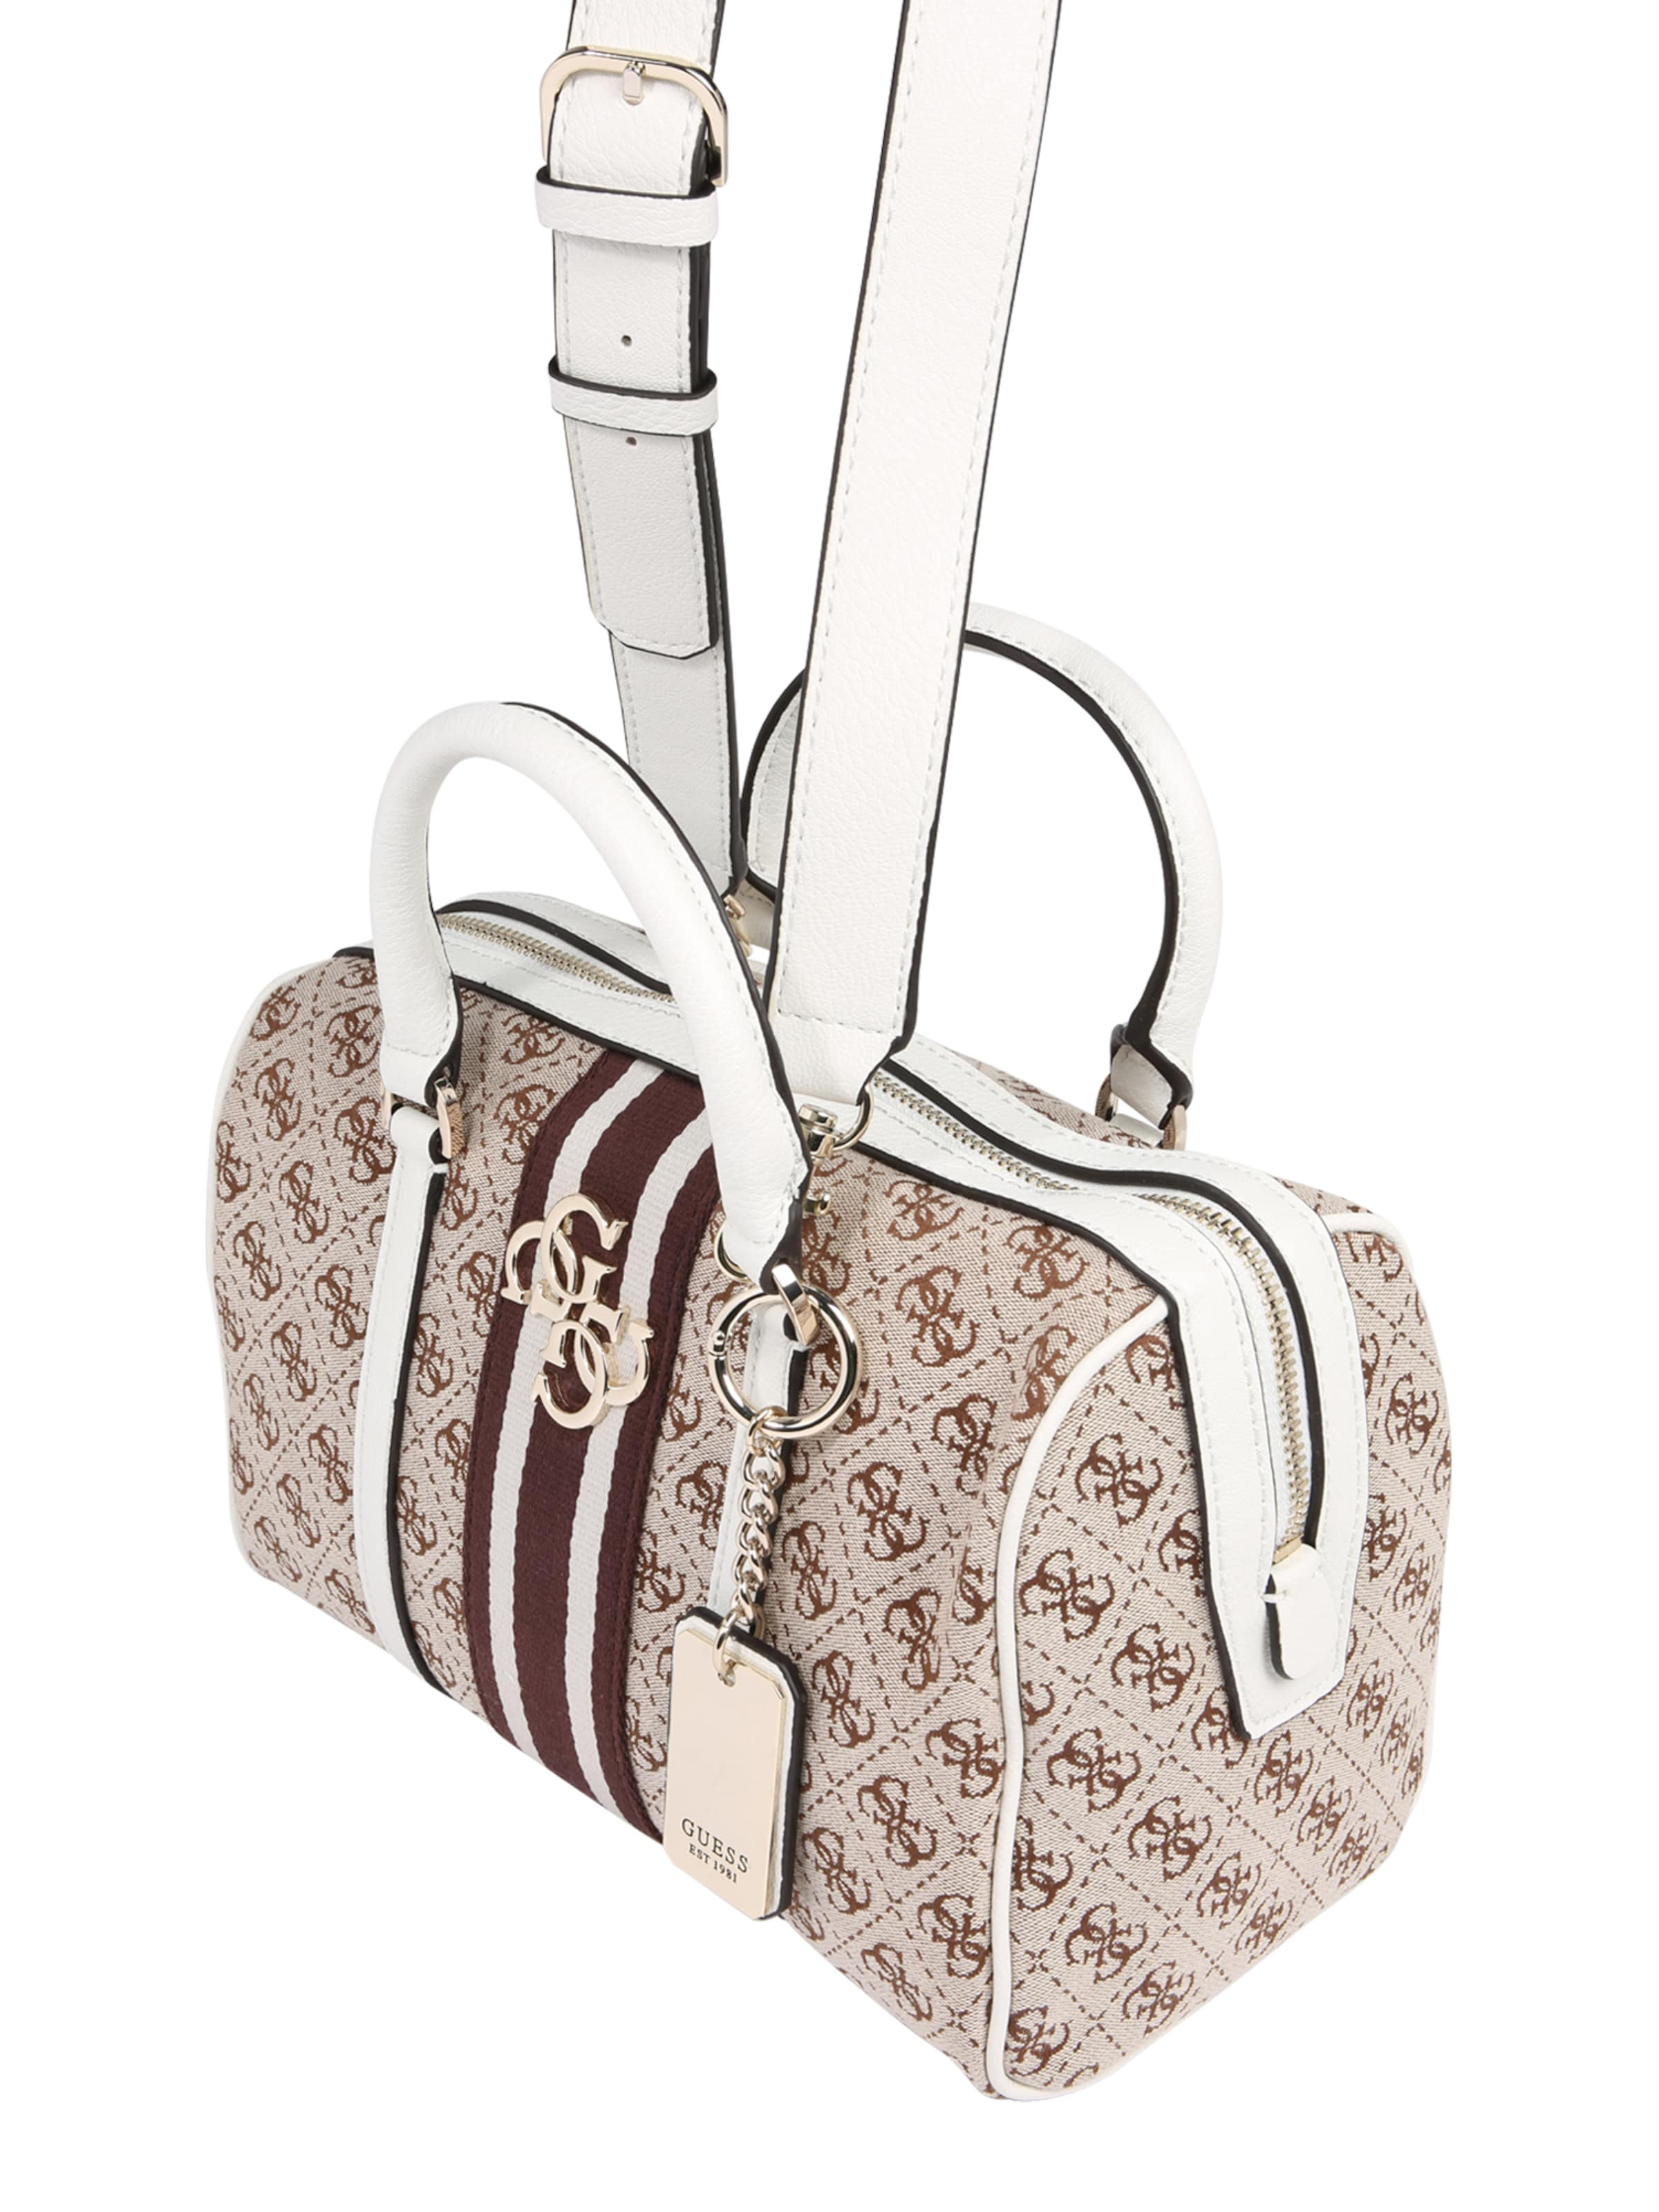 In 'vintage' In Guess Tasche Guess BraunHellbraun 'vintage' Guess BraunHellbraun Tasche Tasche PkZiuOXT